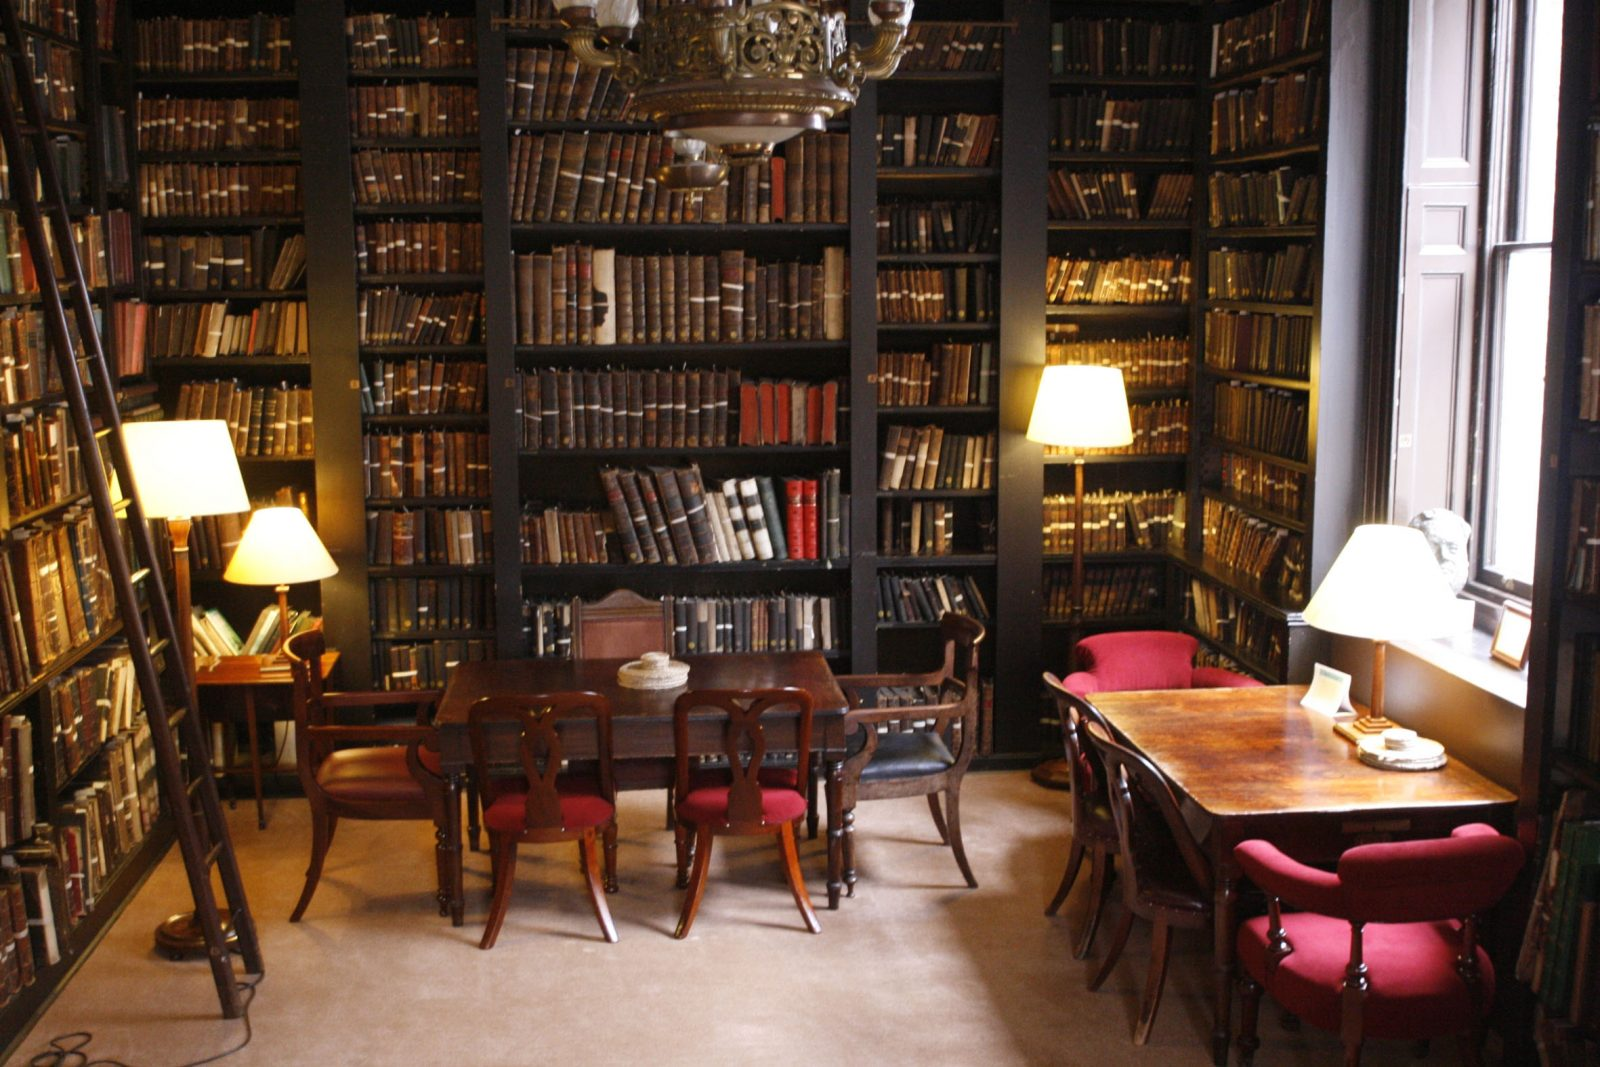 Wales Corporate Travel Meetings, Gladstone's Library, Hawarden, Wales